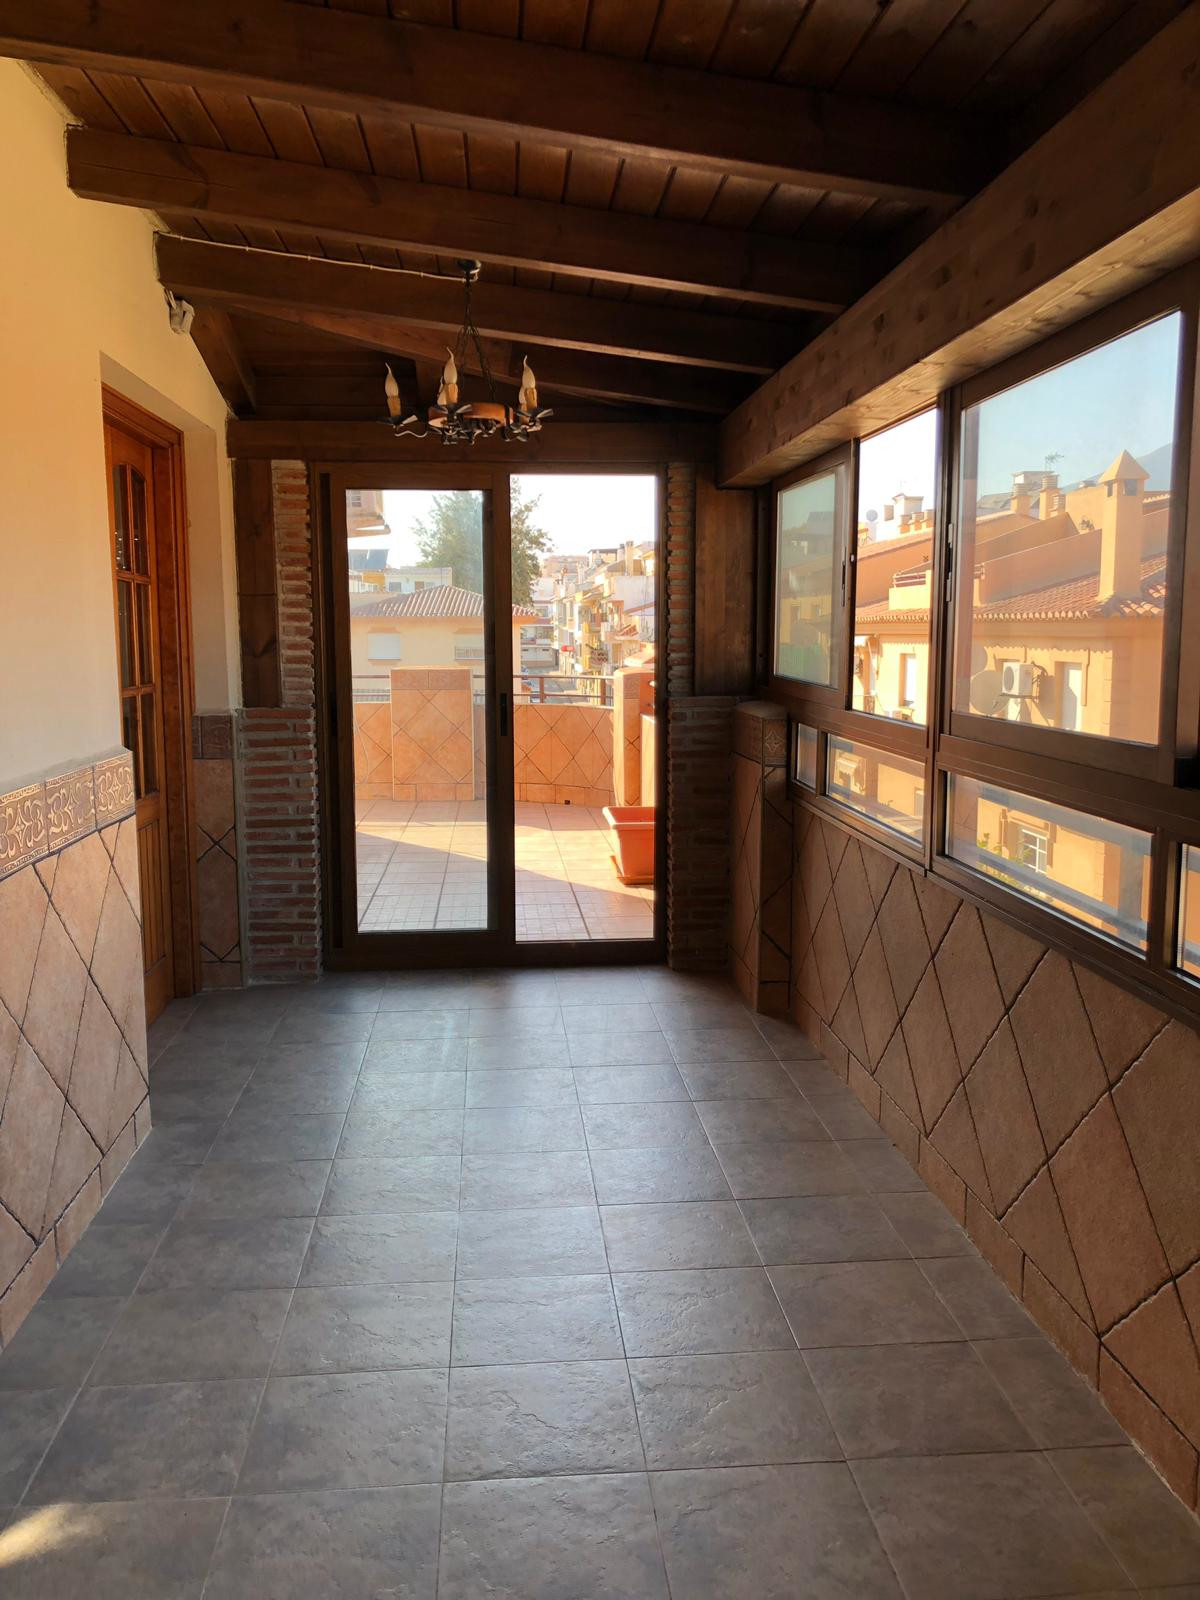 Excellent penthouse located in Las Lagunas, closed to Fuengirola. Corner house with large terrace wi,Spain